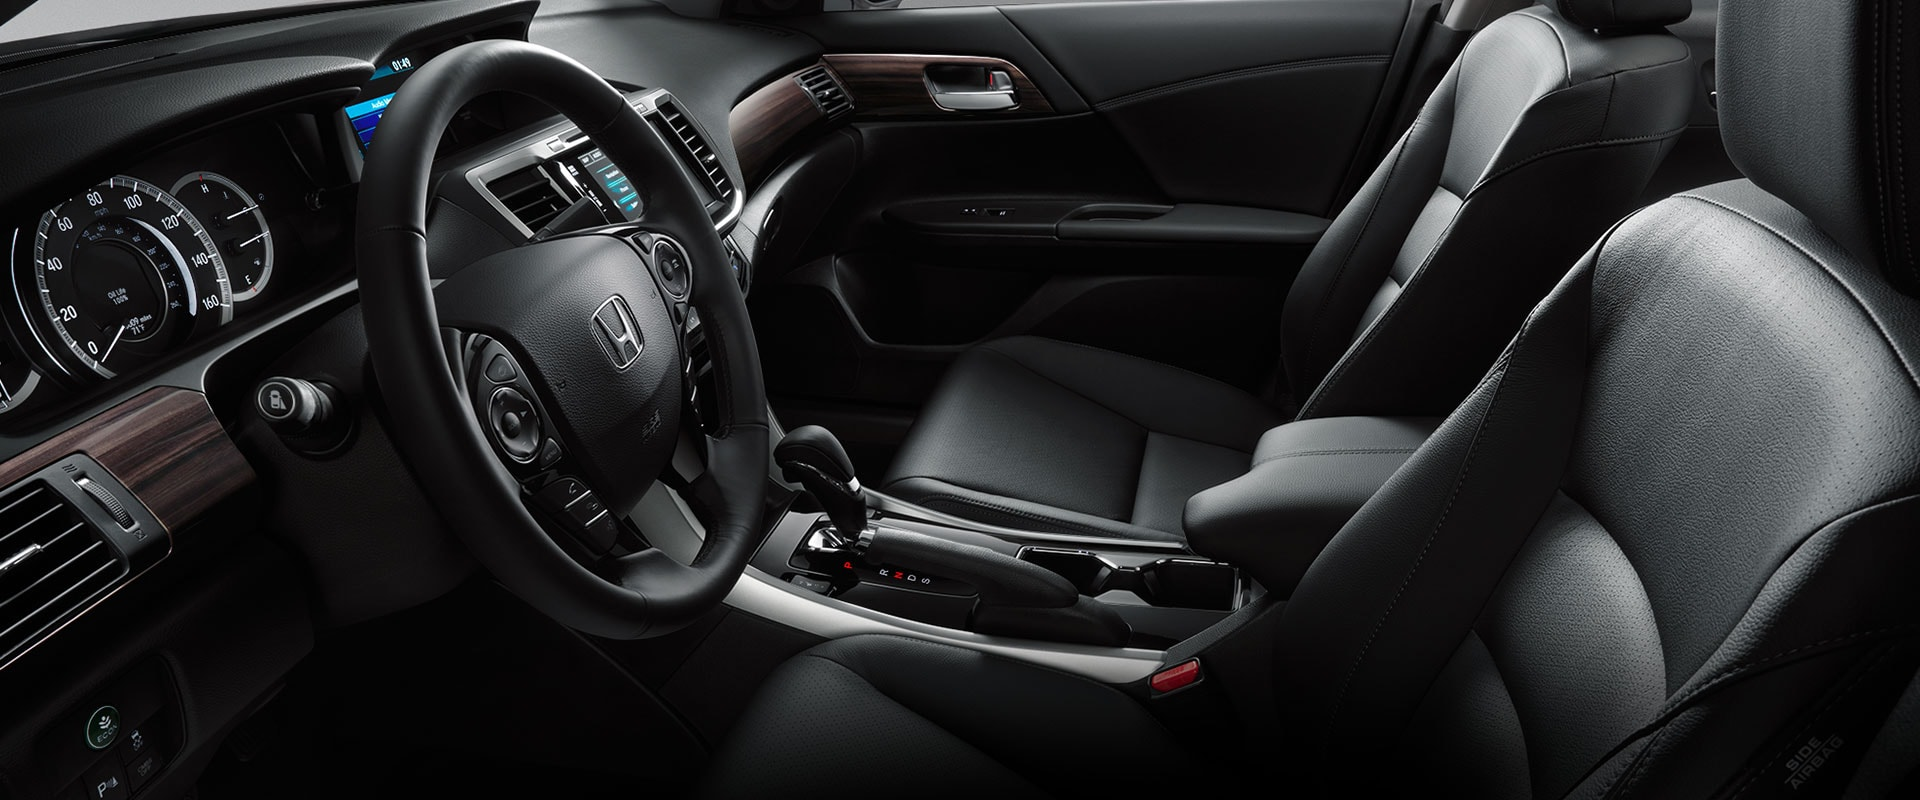 images 2016 accord sedan features